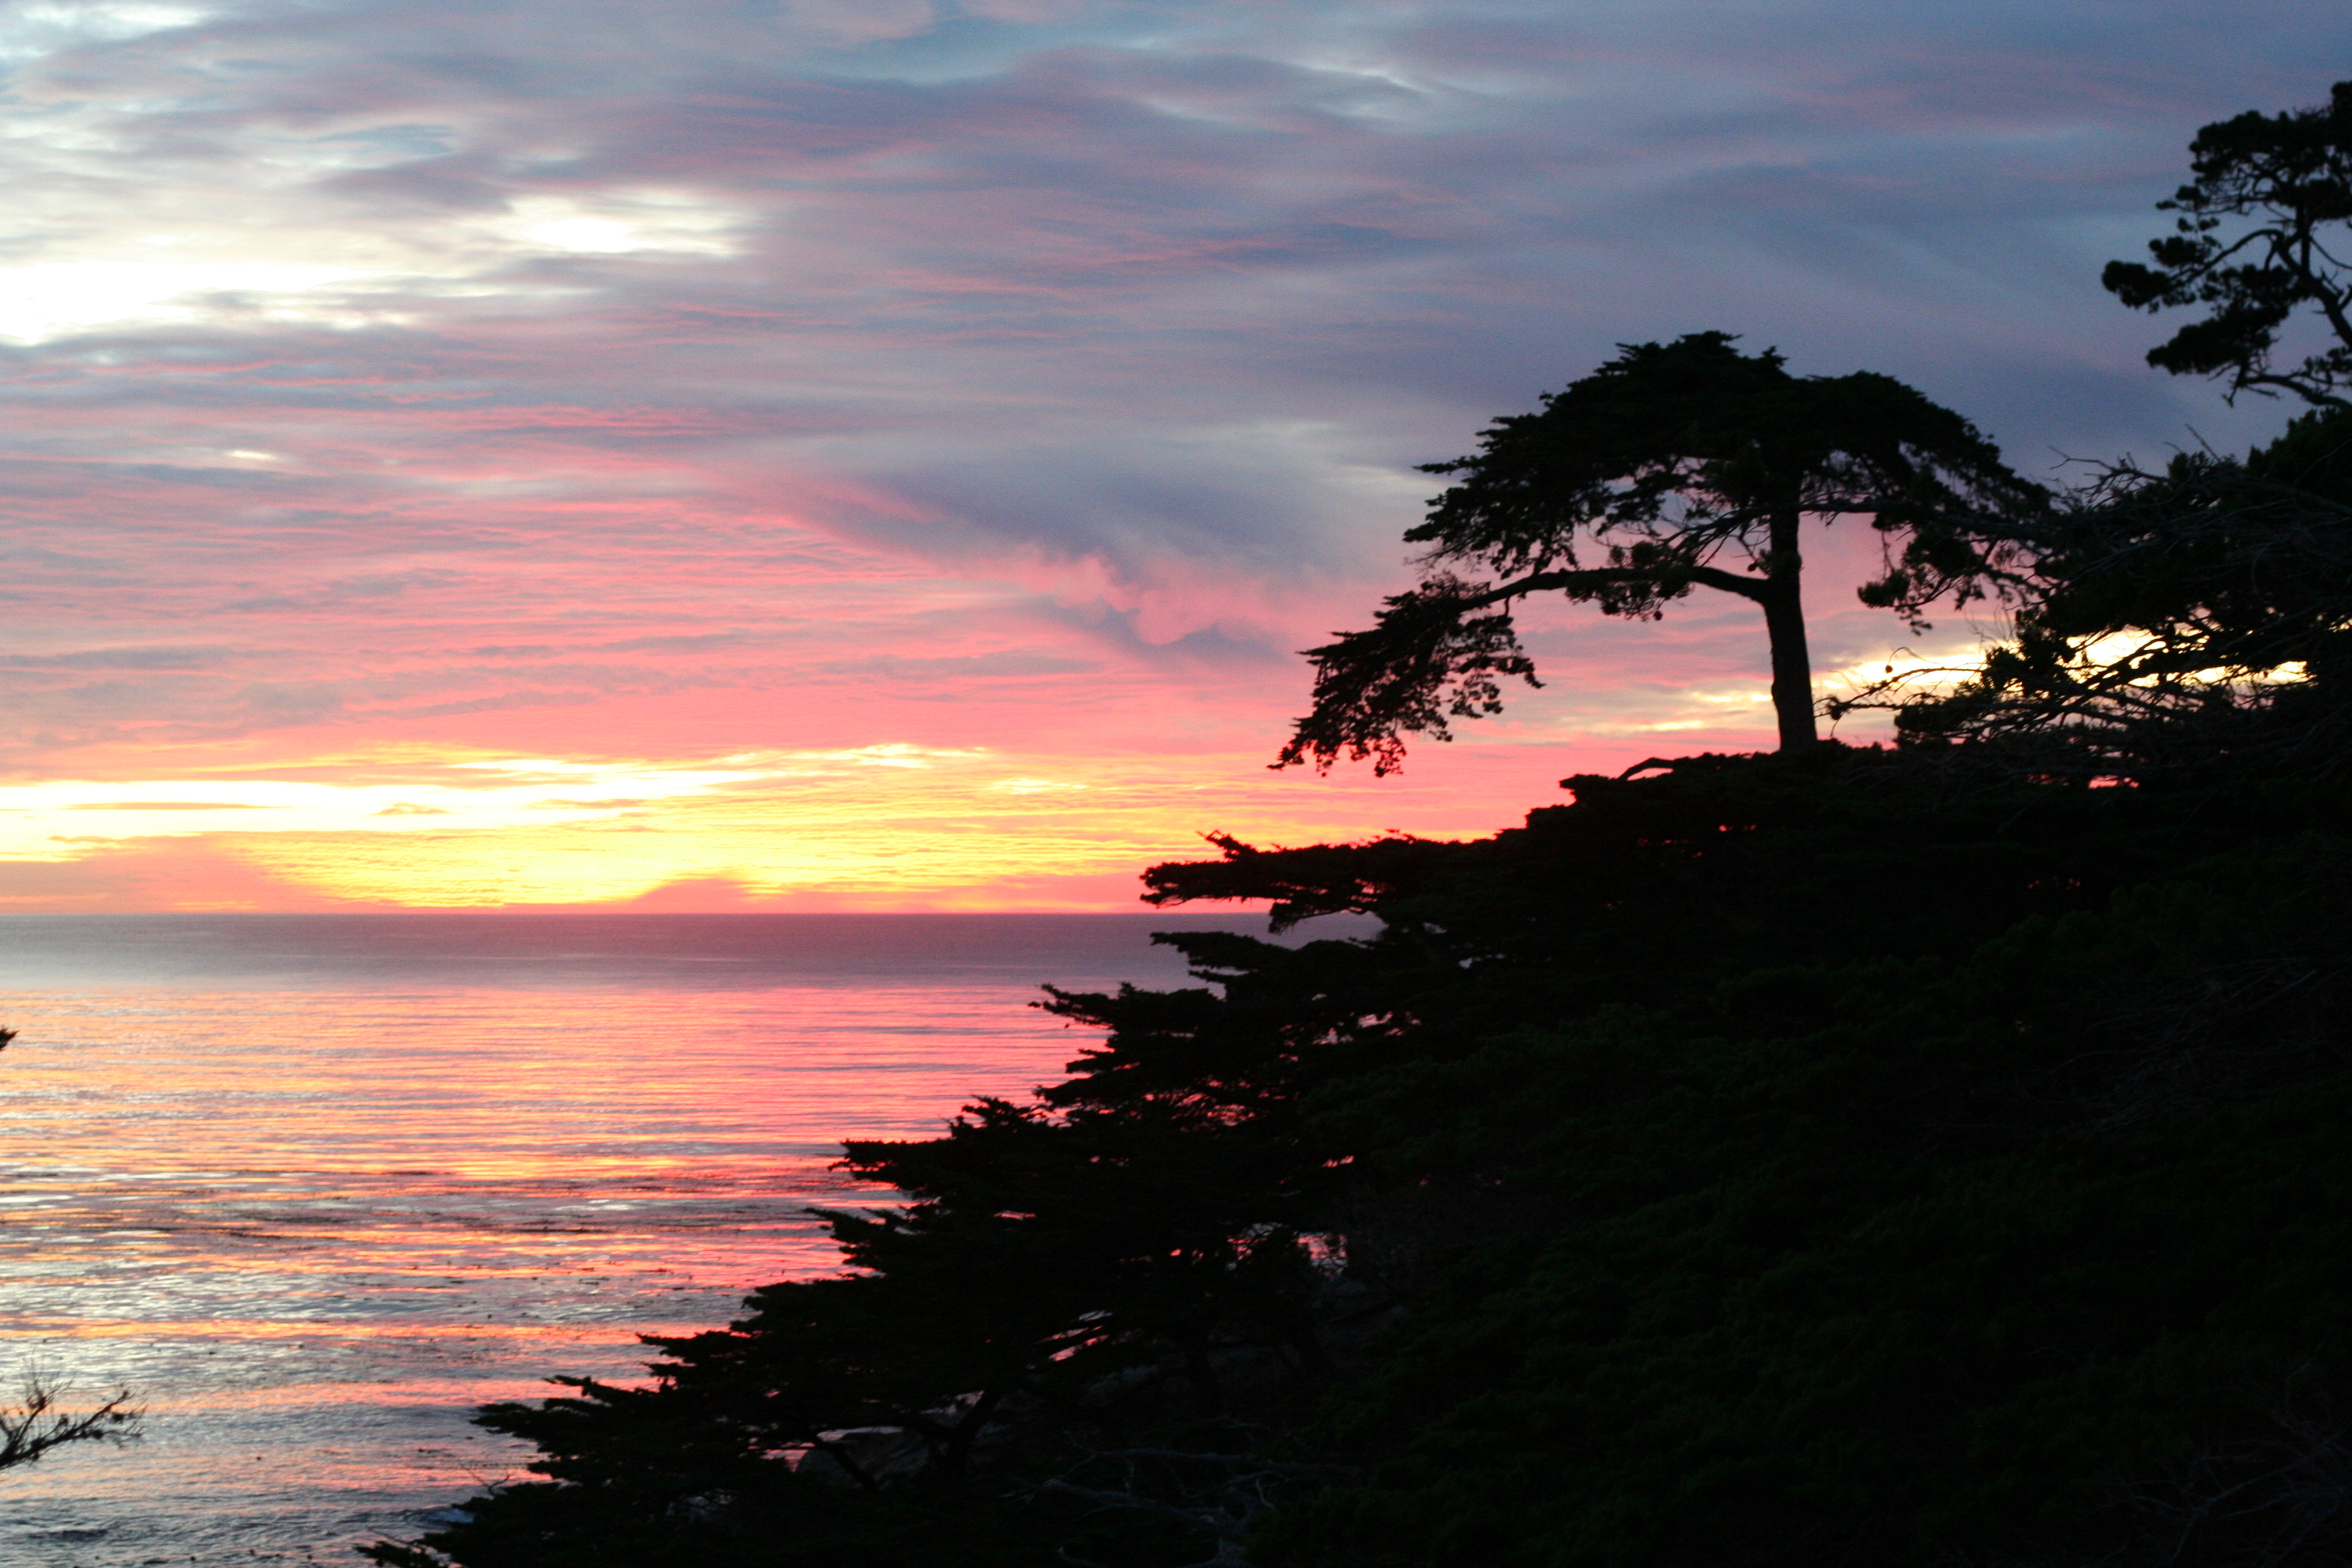 ... at The Lone Cypress point lookout, Pebble Beach, Northern California